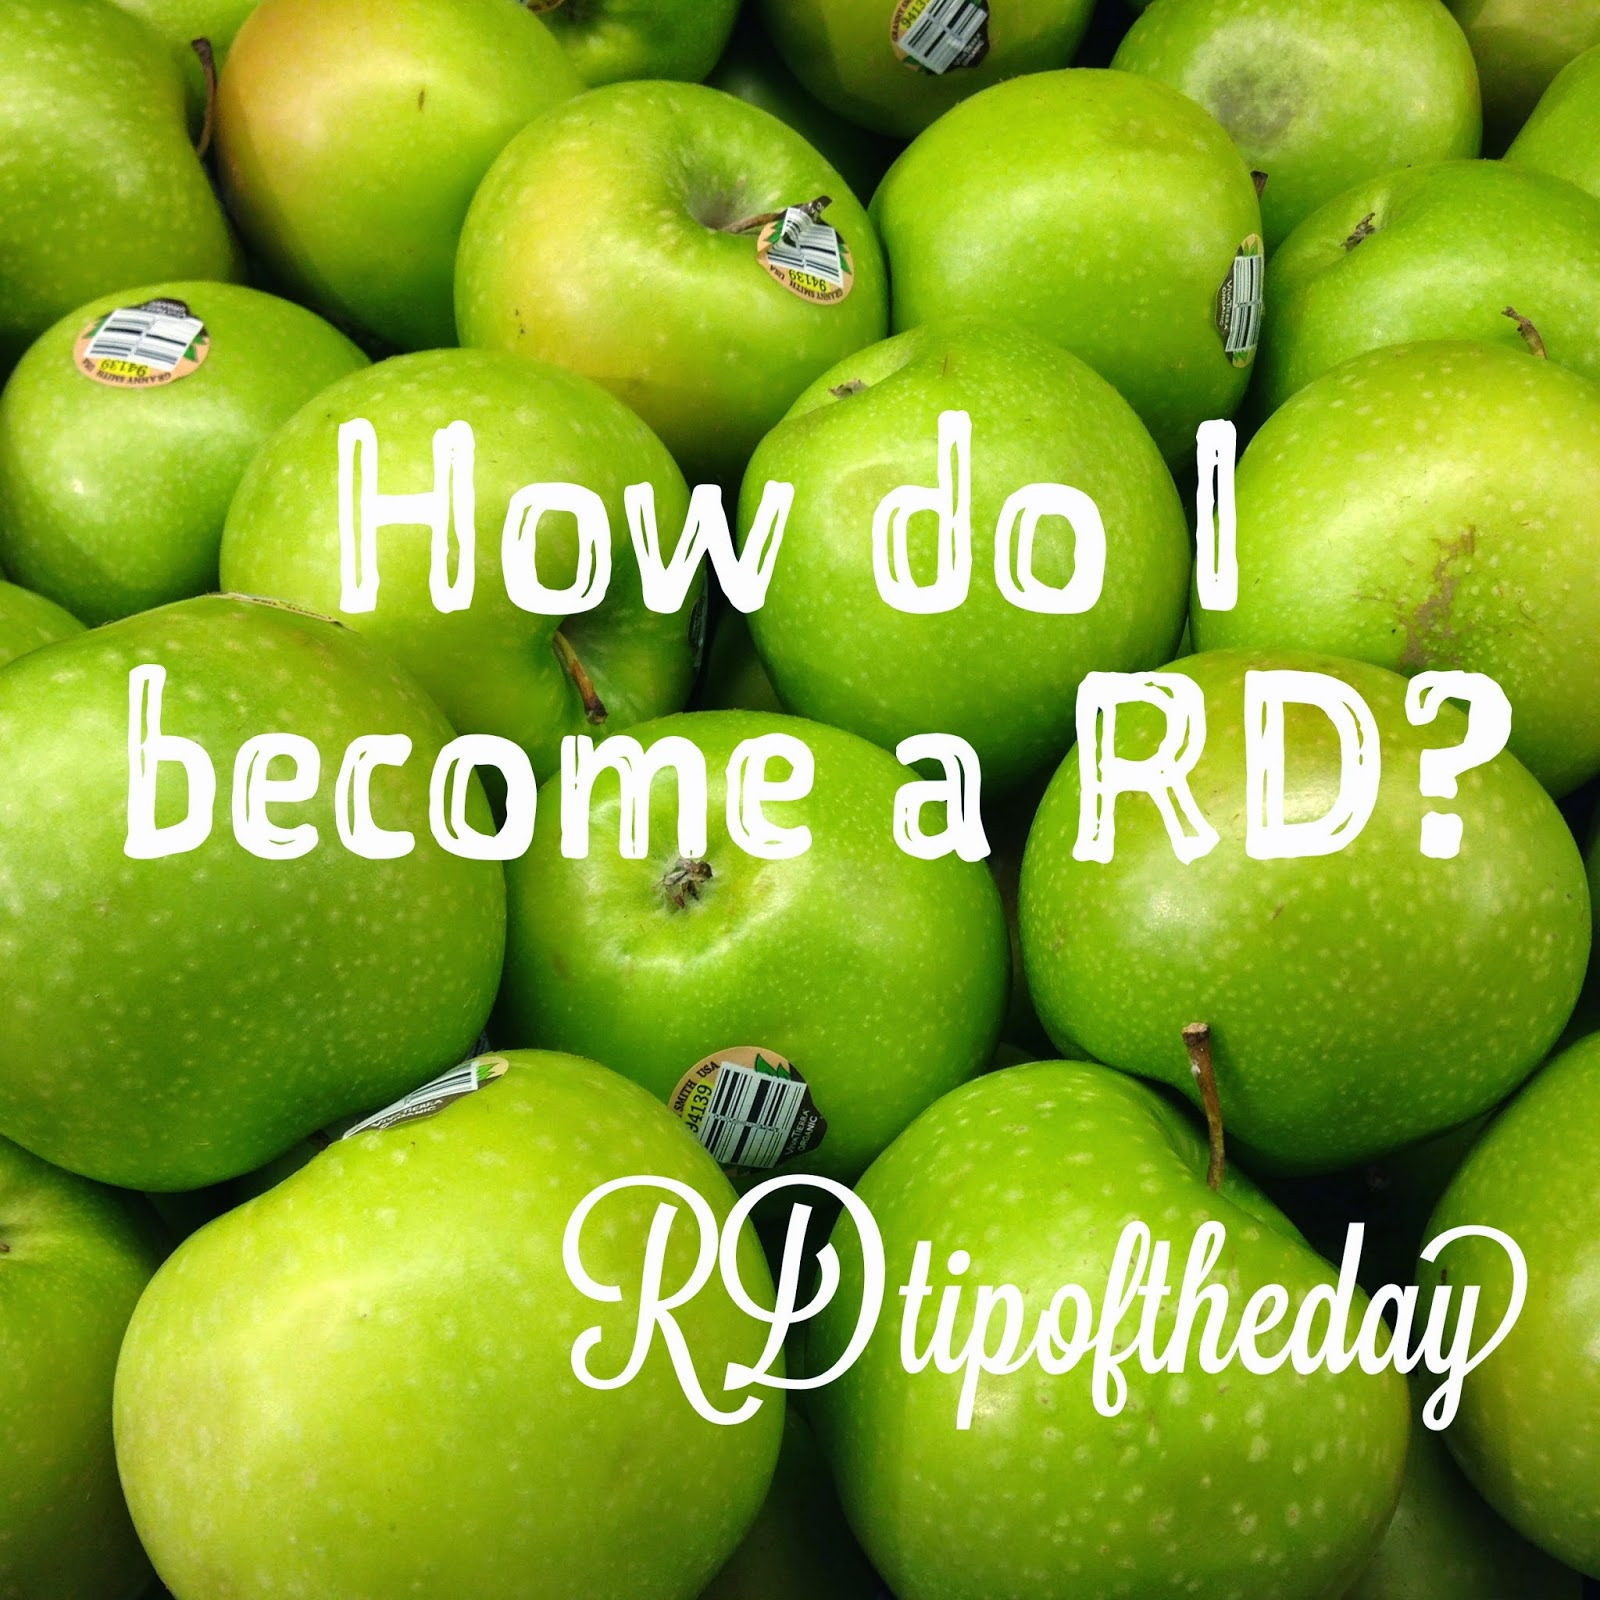 Becoming a Registered Dietitian   Happy Dietitian CSU Online   Colorado State University Proud to be a registered dietitian nutritionist    Neily on Nutrition    Jennifer Neily   Dallas Registered Dietitian Nutritionist